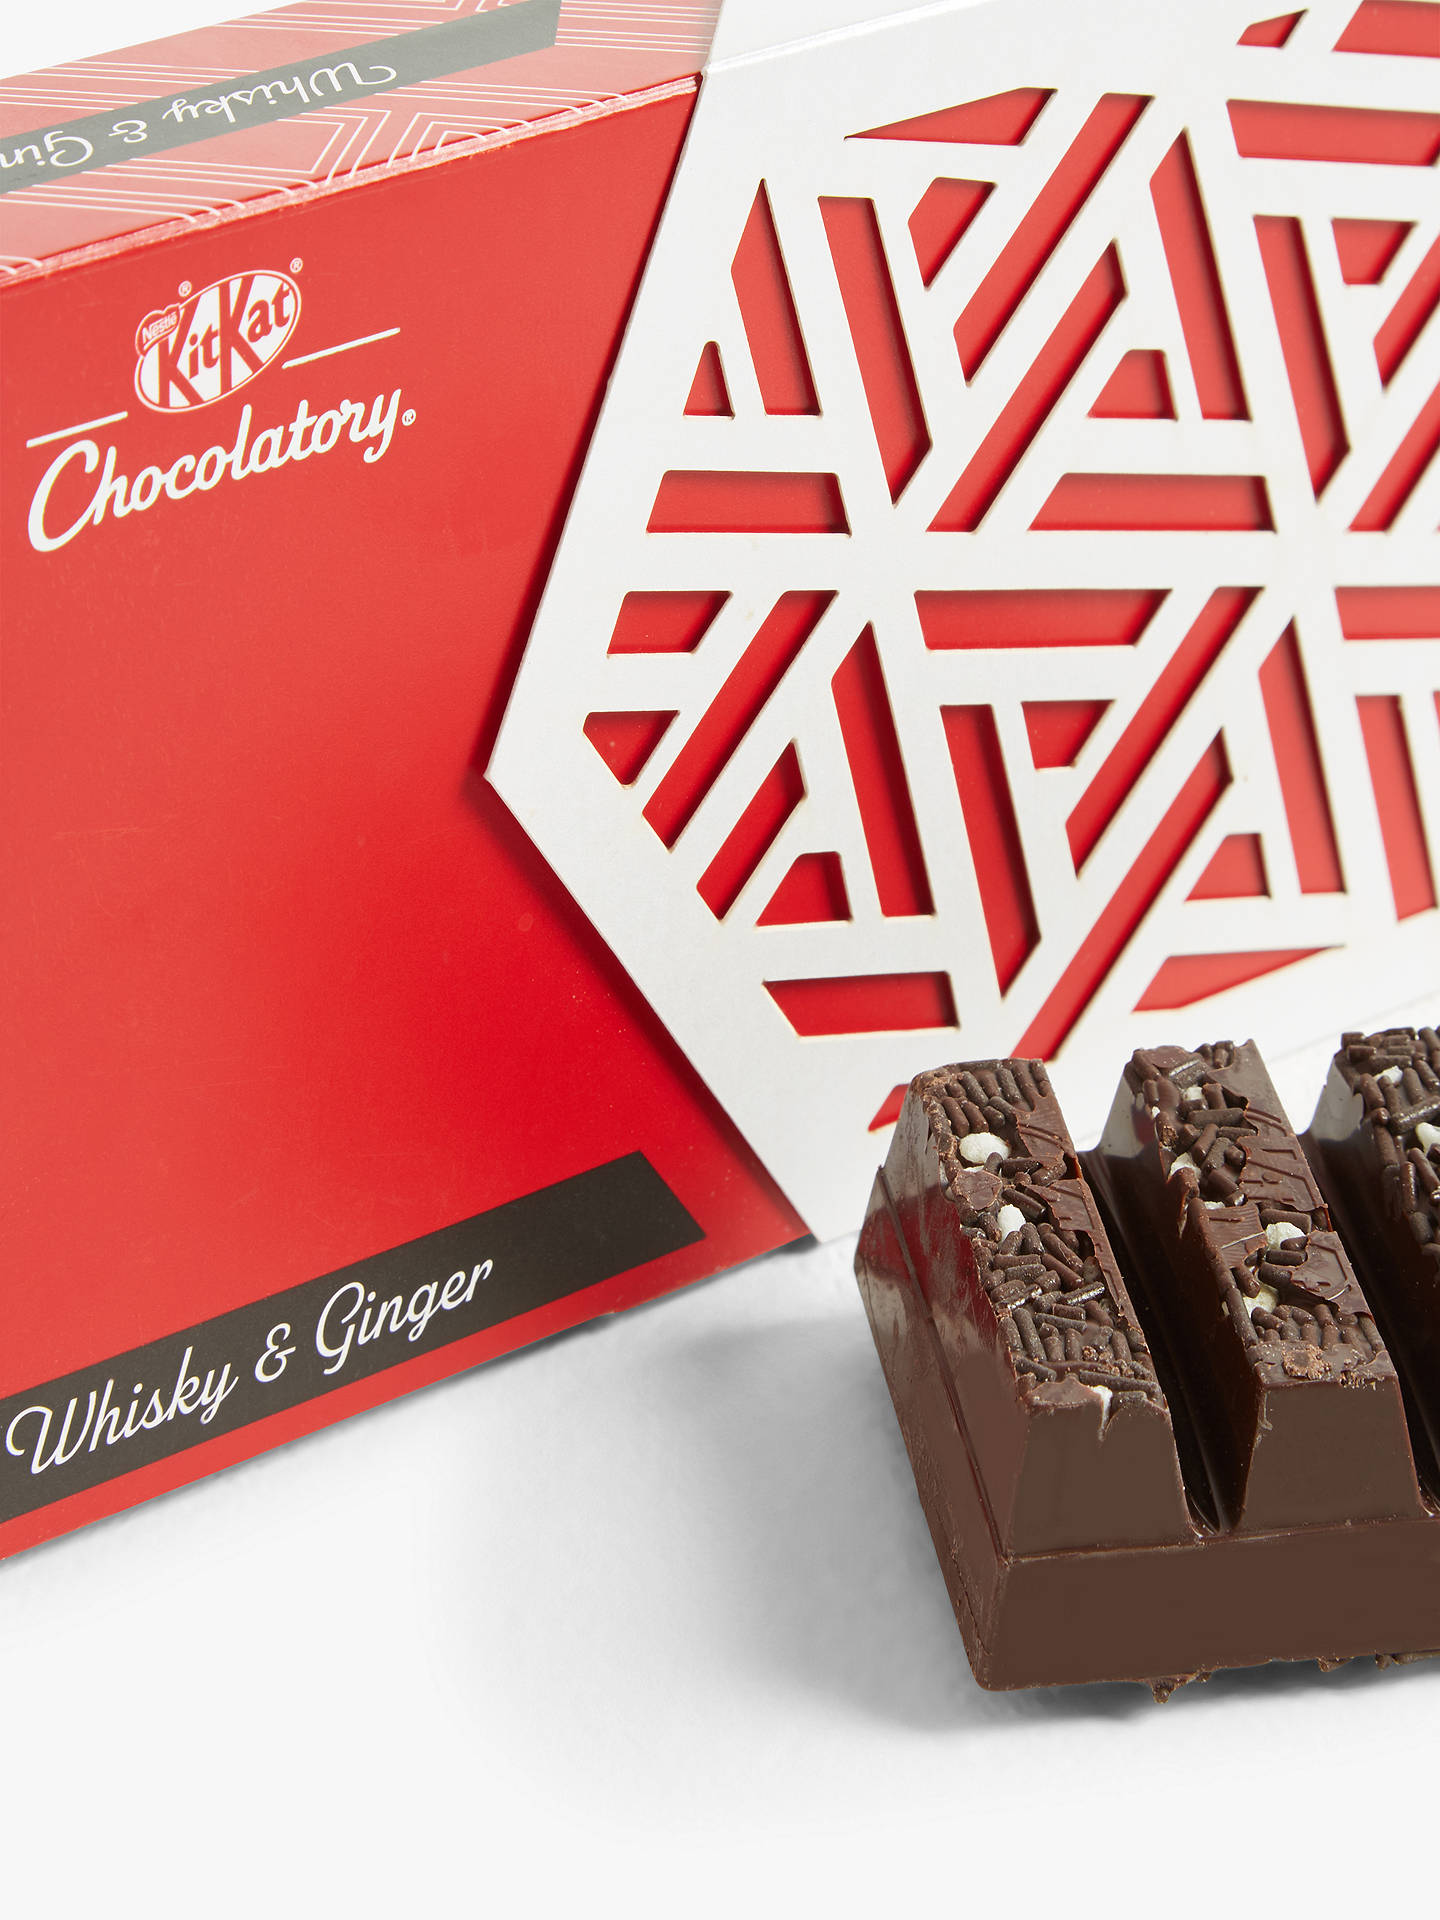 Buy KitKat Chocolatory Whisky & Ginger, 6 Finger Pack, 76g Online at johnlewis.com